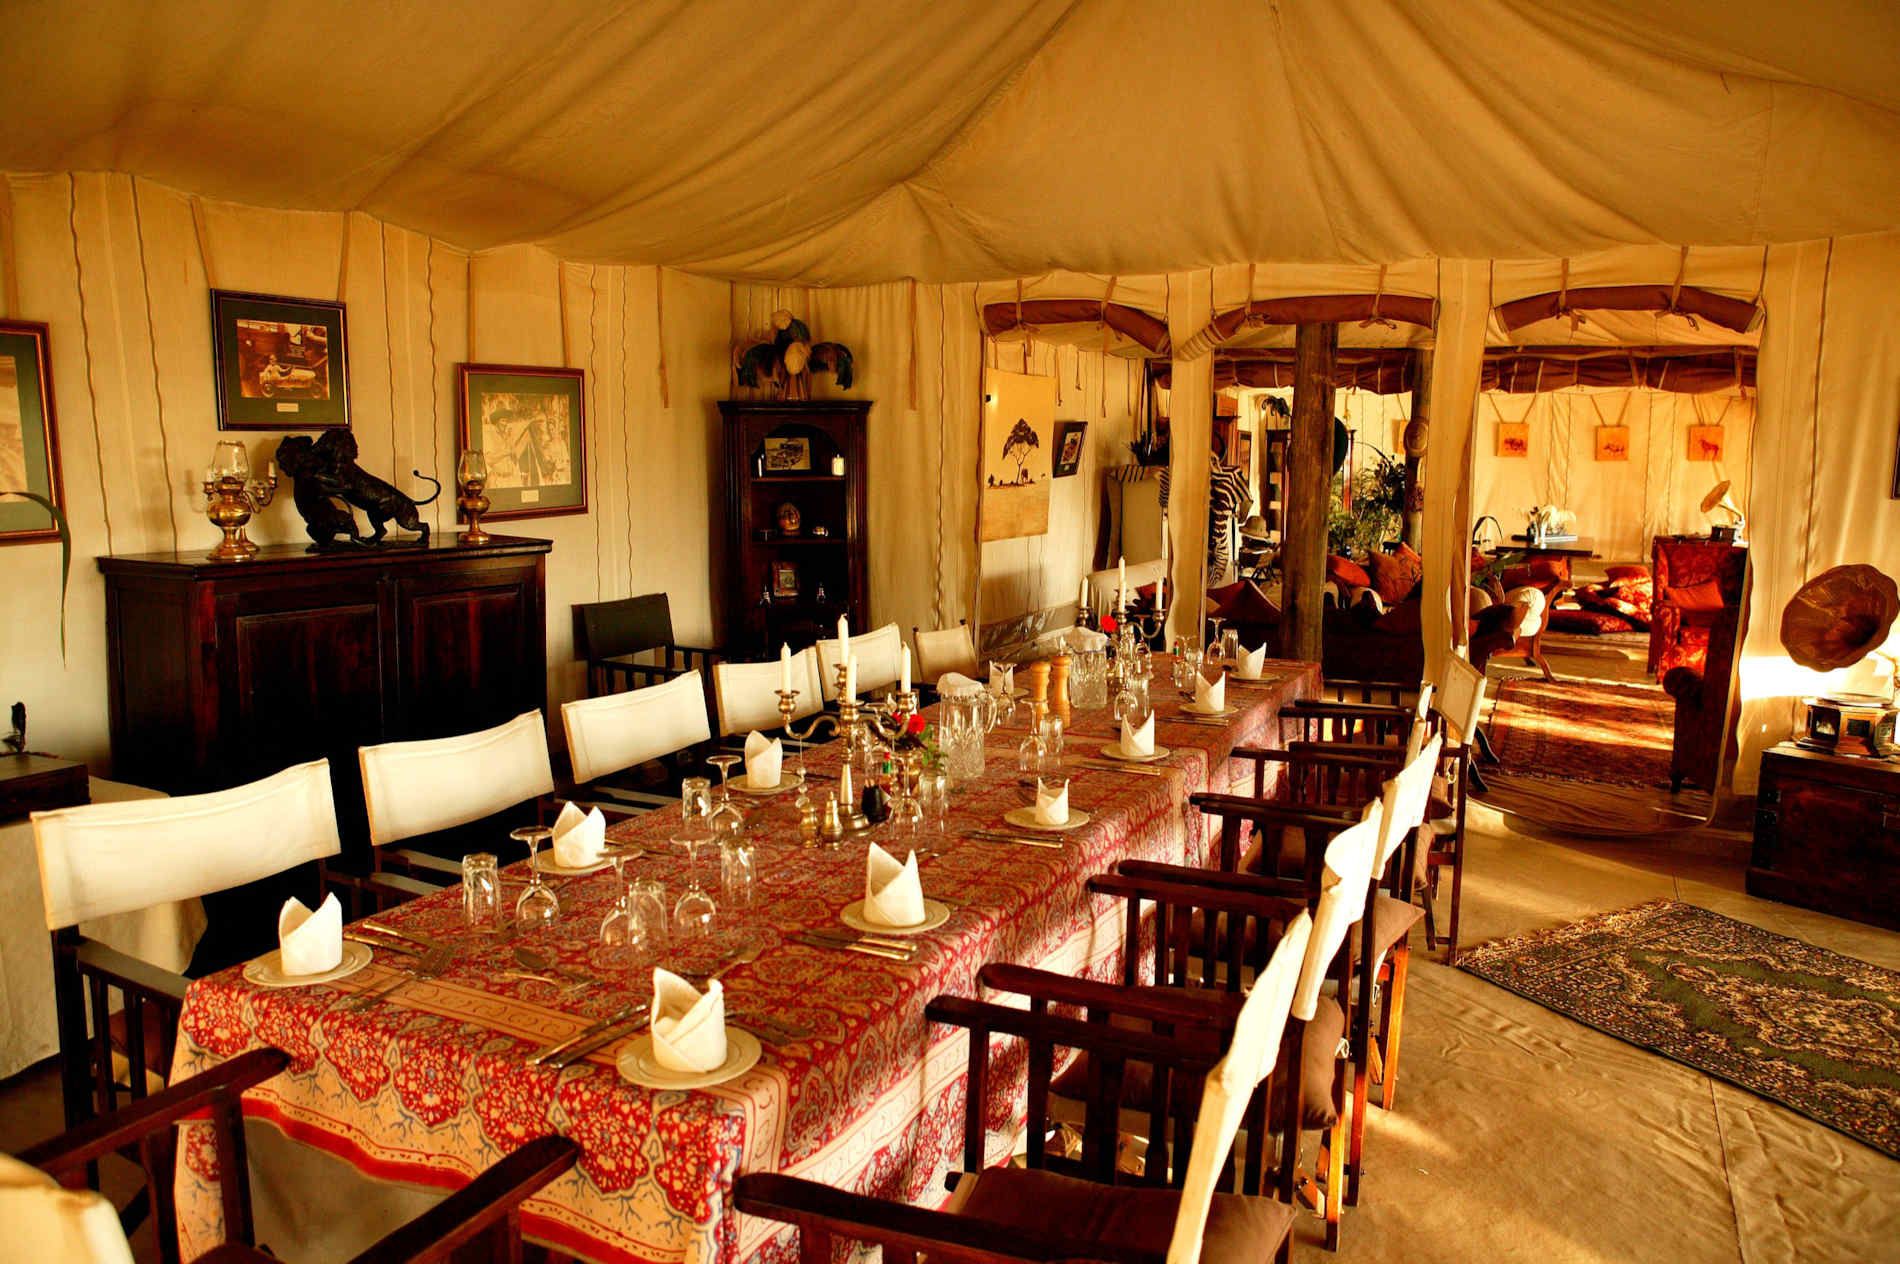 Cottars 1920 Camp Kenia Dining Room Esszimmer